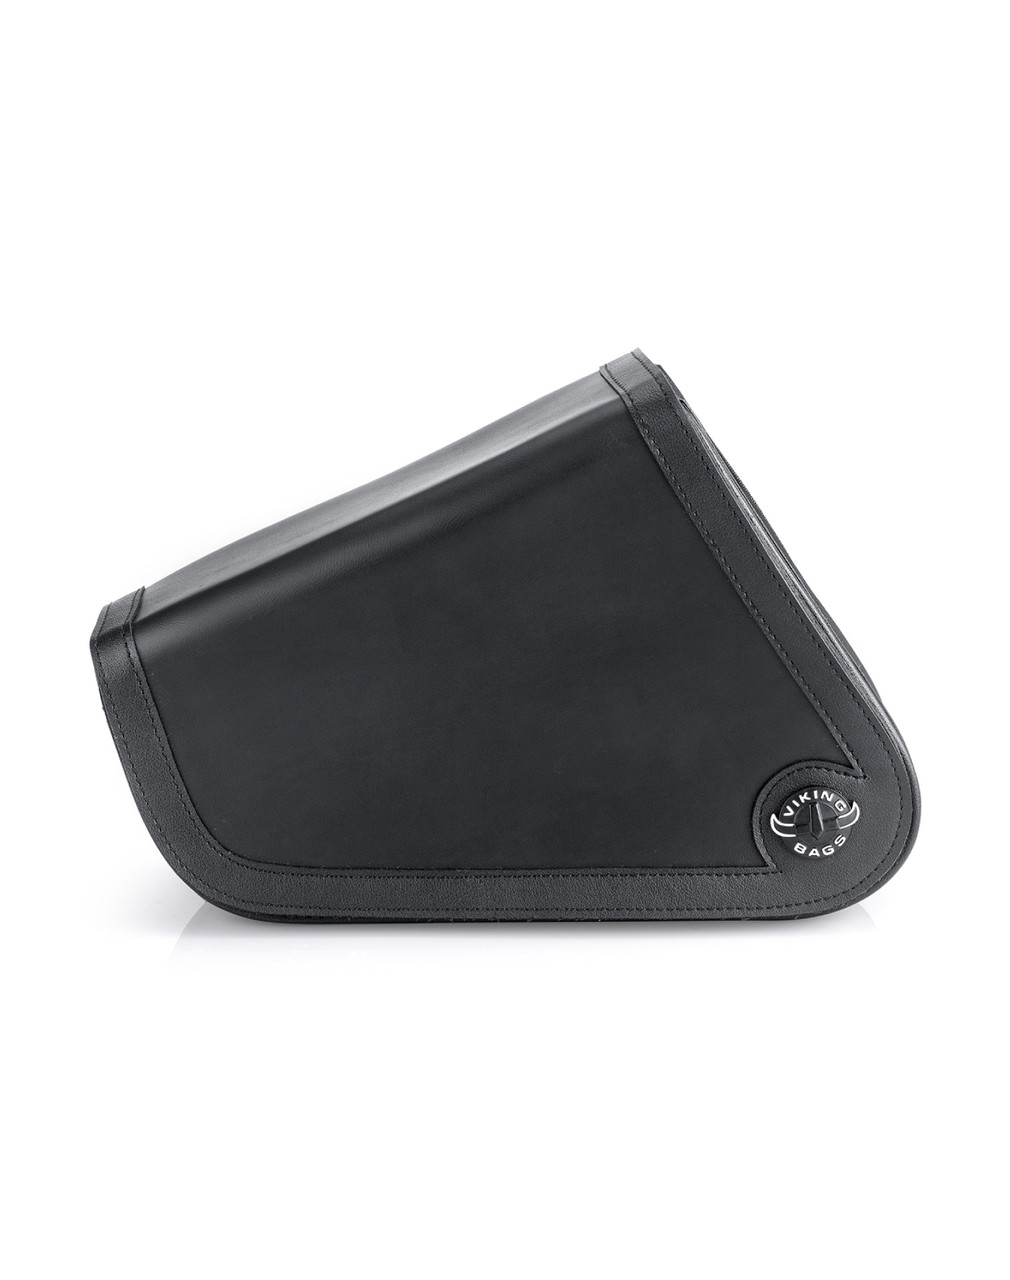 VikingBags Plain Sportster Motorcycle Swing Arm Bag Front View